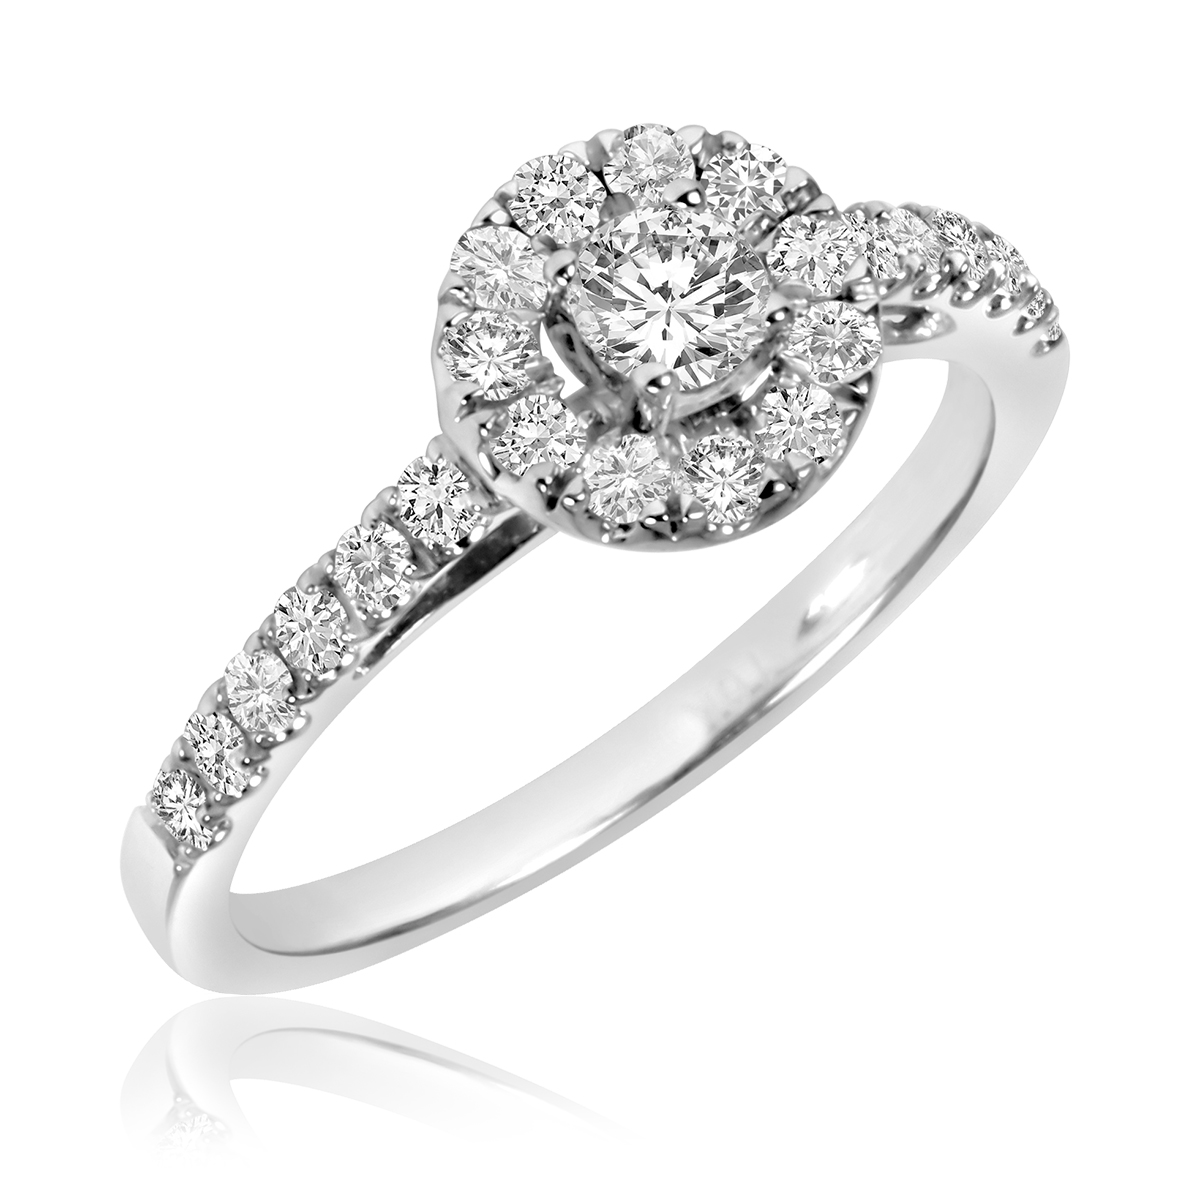 Hers Engagement Ring, Ladies Wedding Band, Men's Wedding Band Matching ...